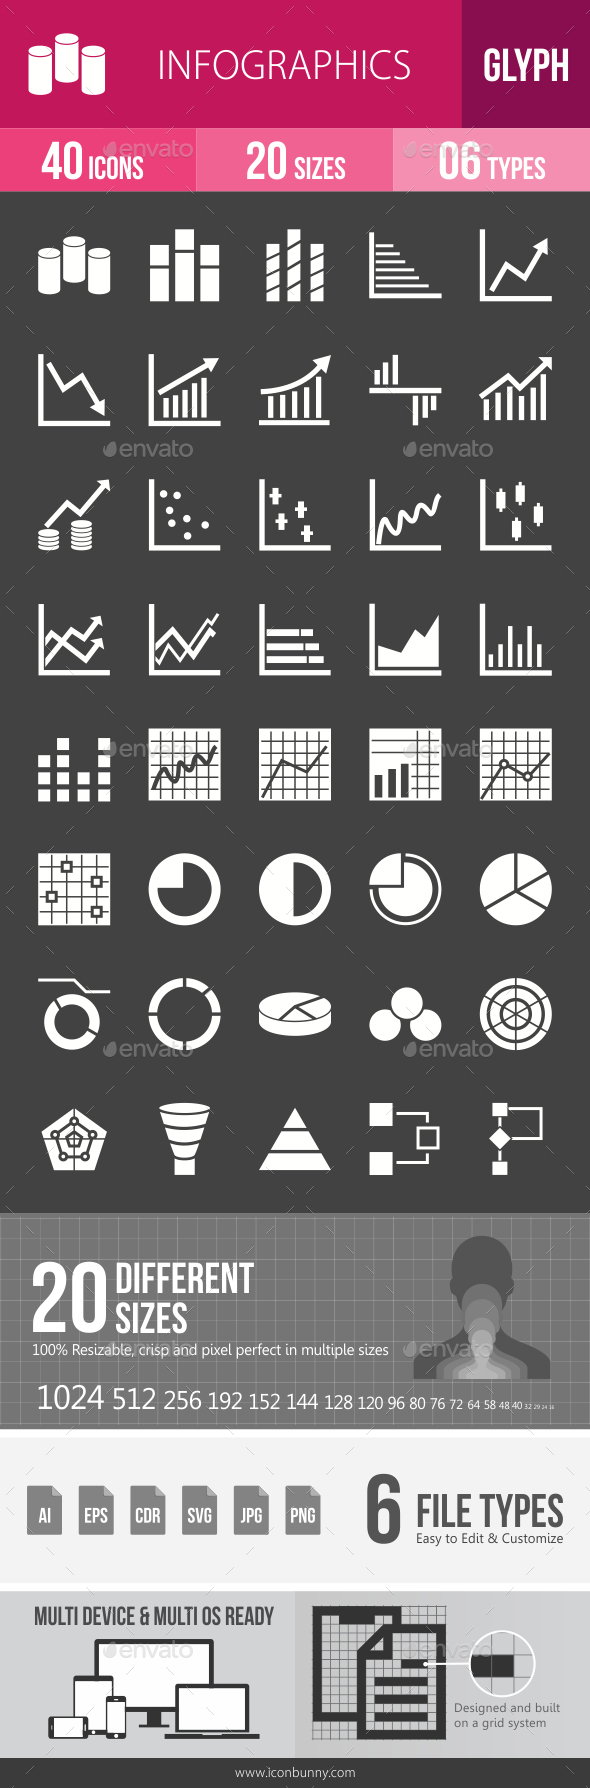 Infographics Glyph Inverted Icons - Icons